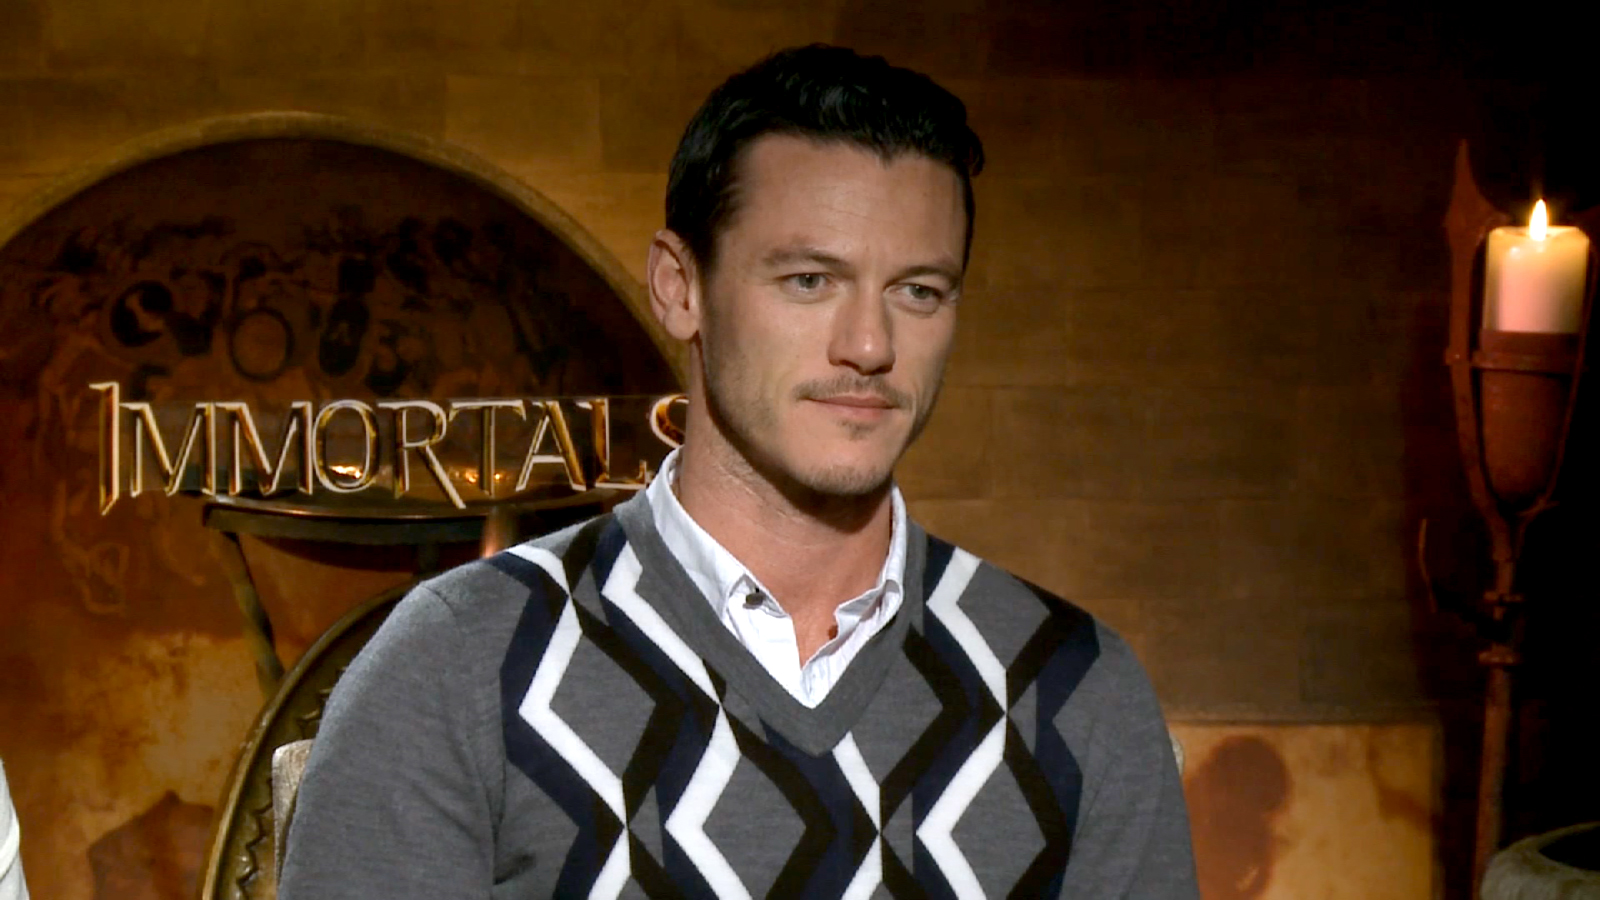 on set Luke Evans hd desktop wallpaper screensaver background 1600x900